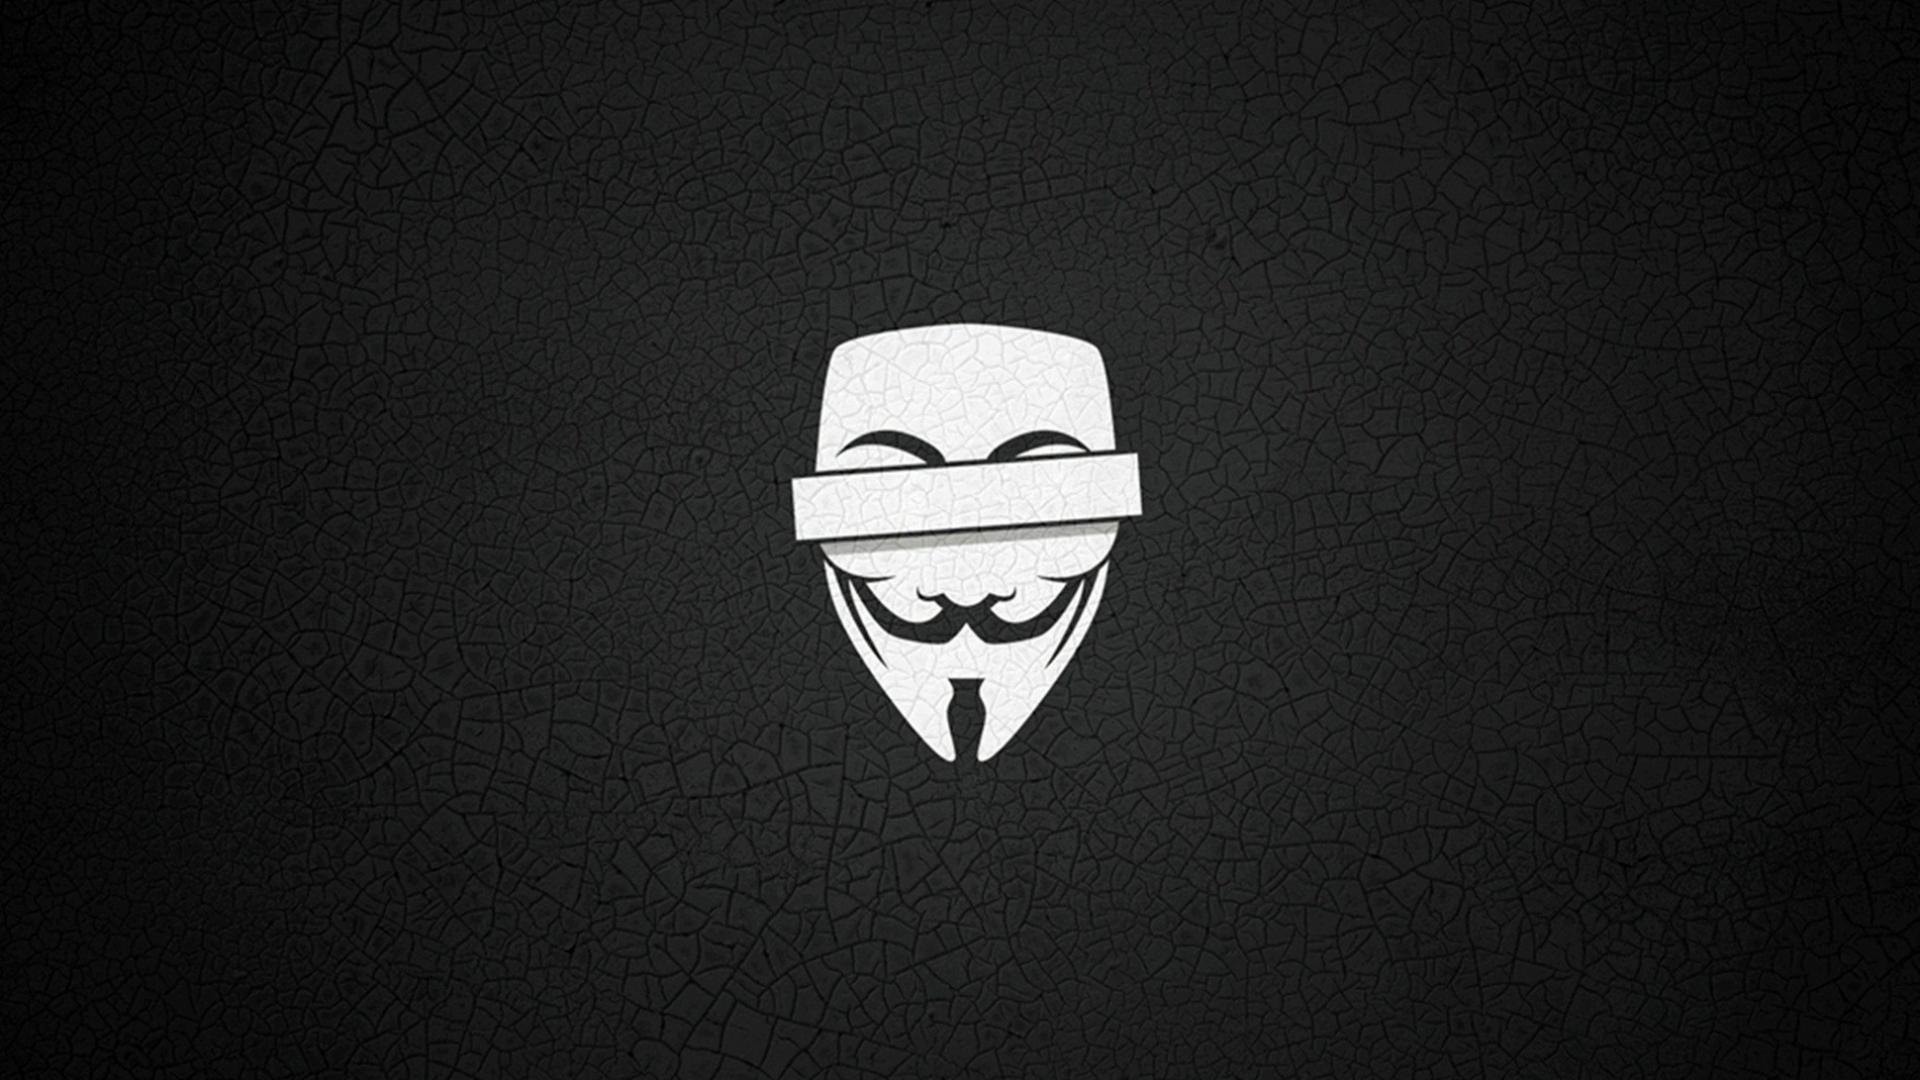 Anonymous simple background wallpaper 46353 1920x1080